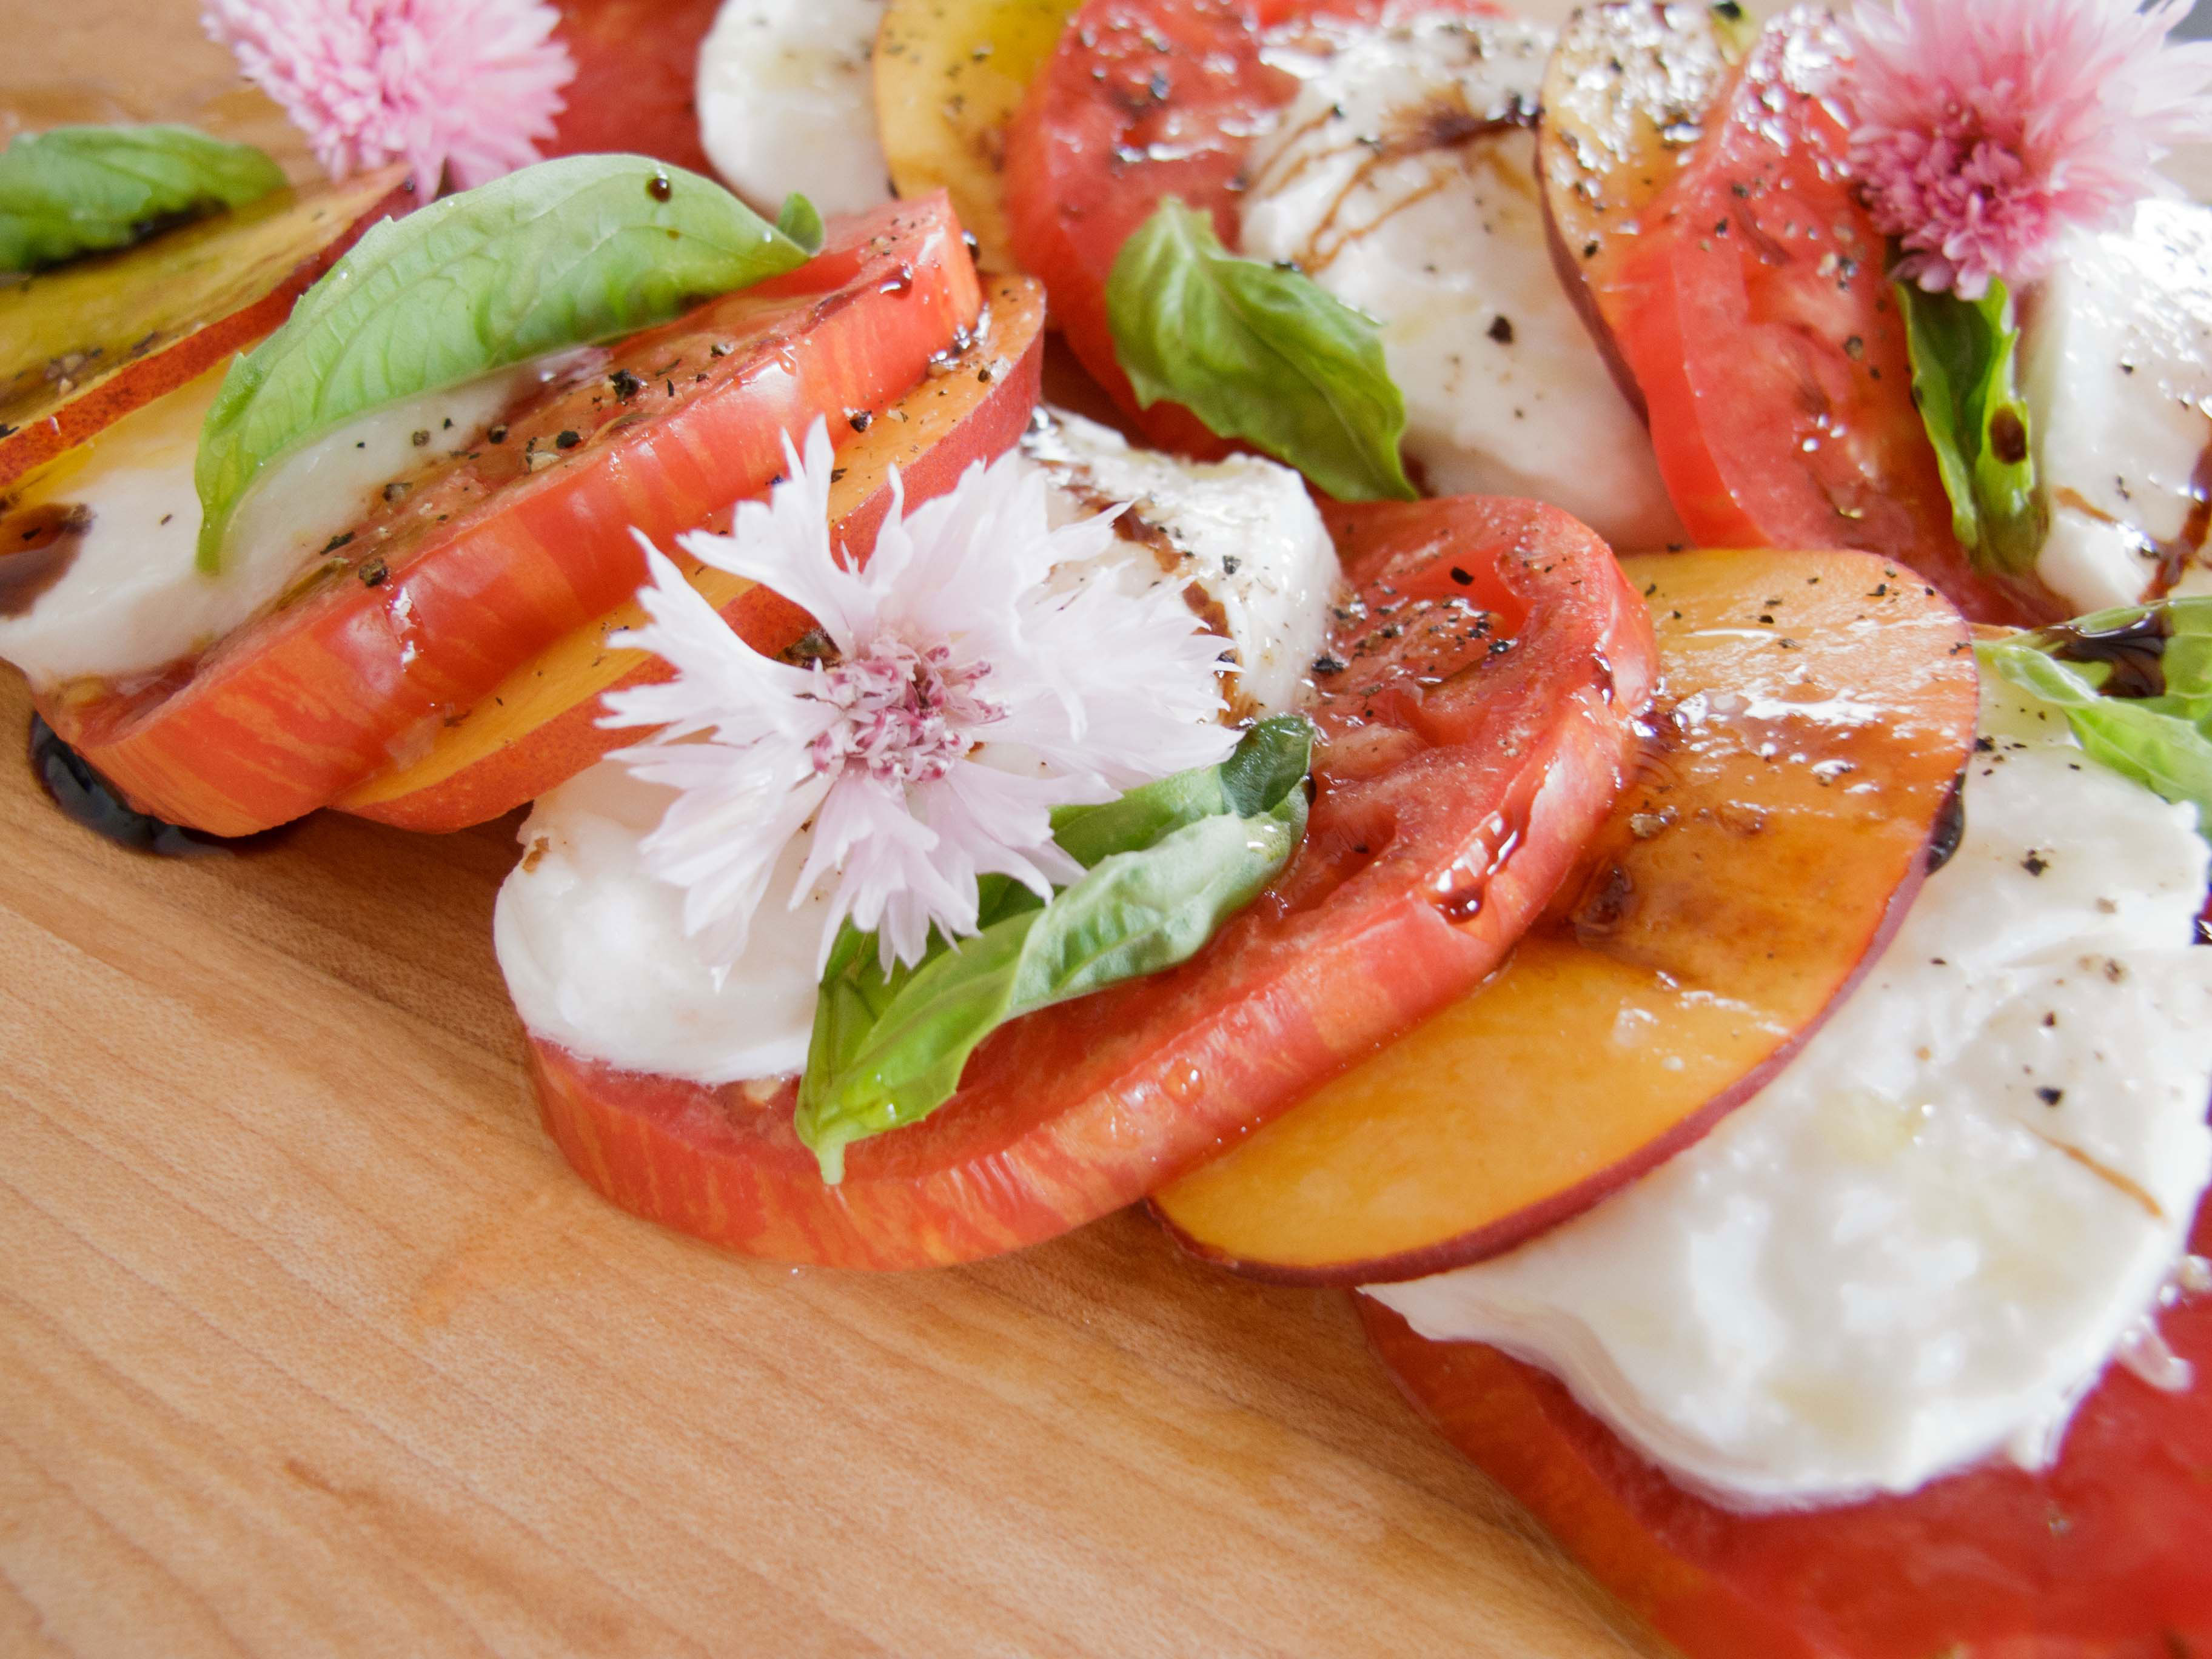 Heirloom Tomato, Nectarine, and Mozzarella Salad Recipe 0